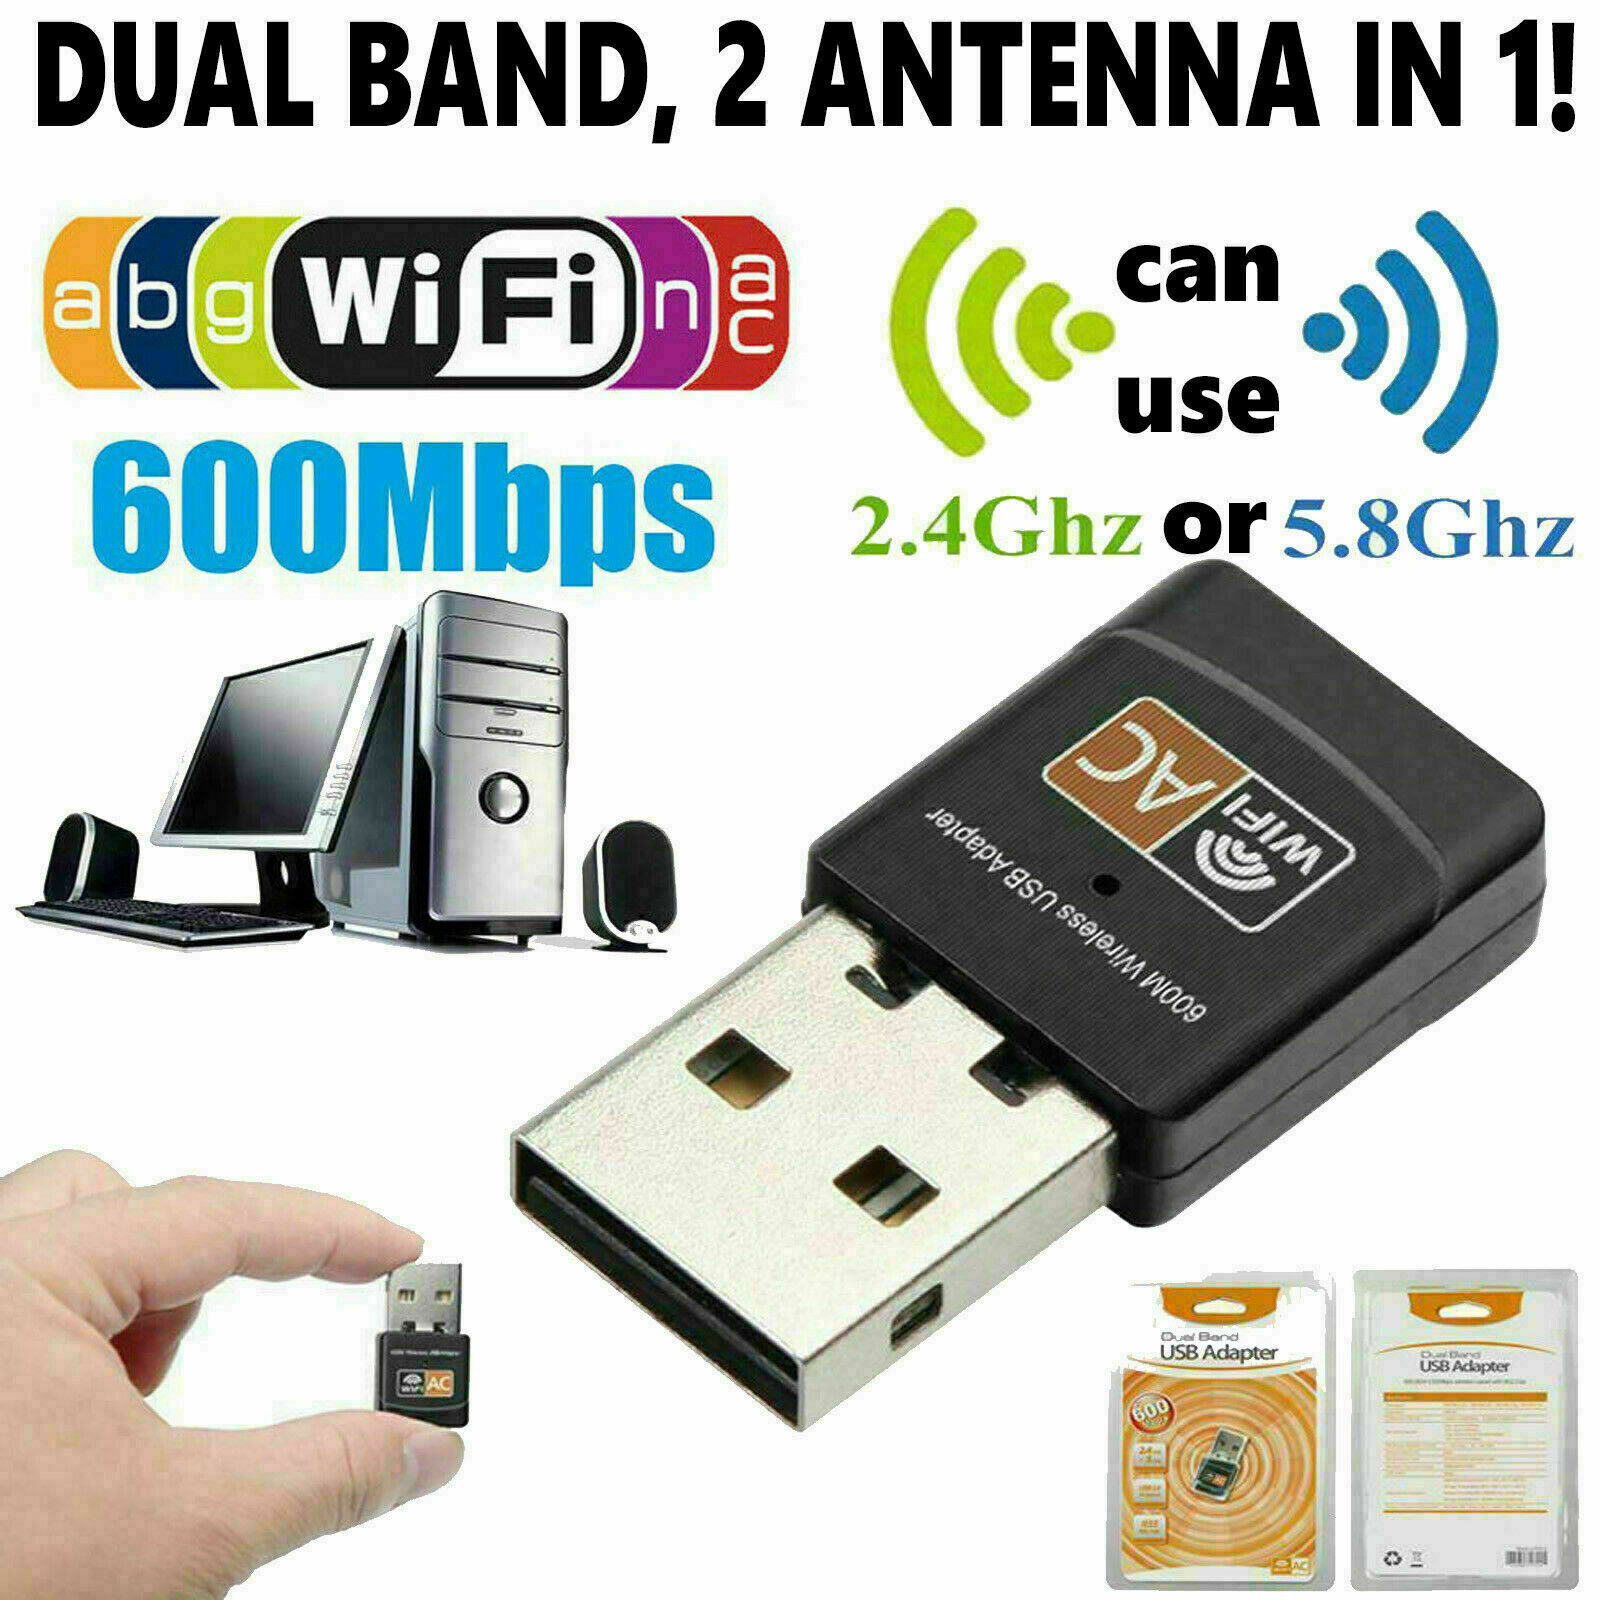 Mini Dual Band 600Mbps USB WiFi Wireless Adapter For Notebook Laptop PC Desktop Computers/Tablets & Networking